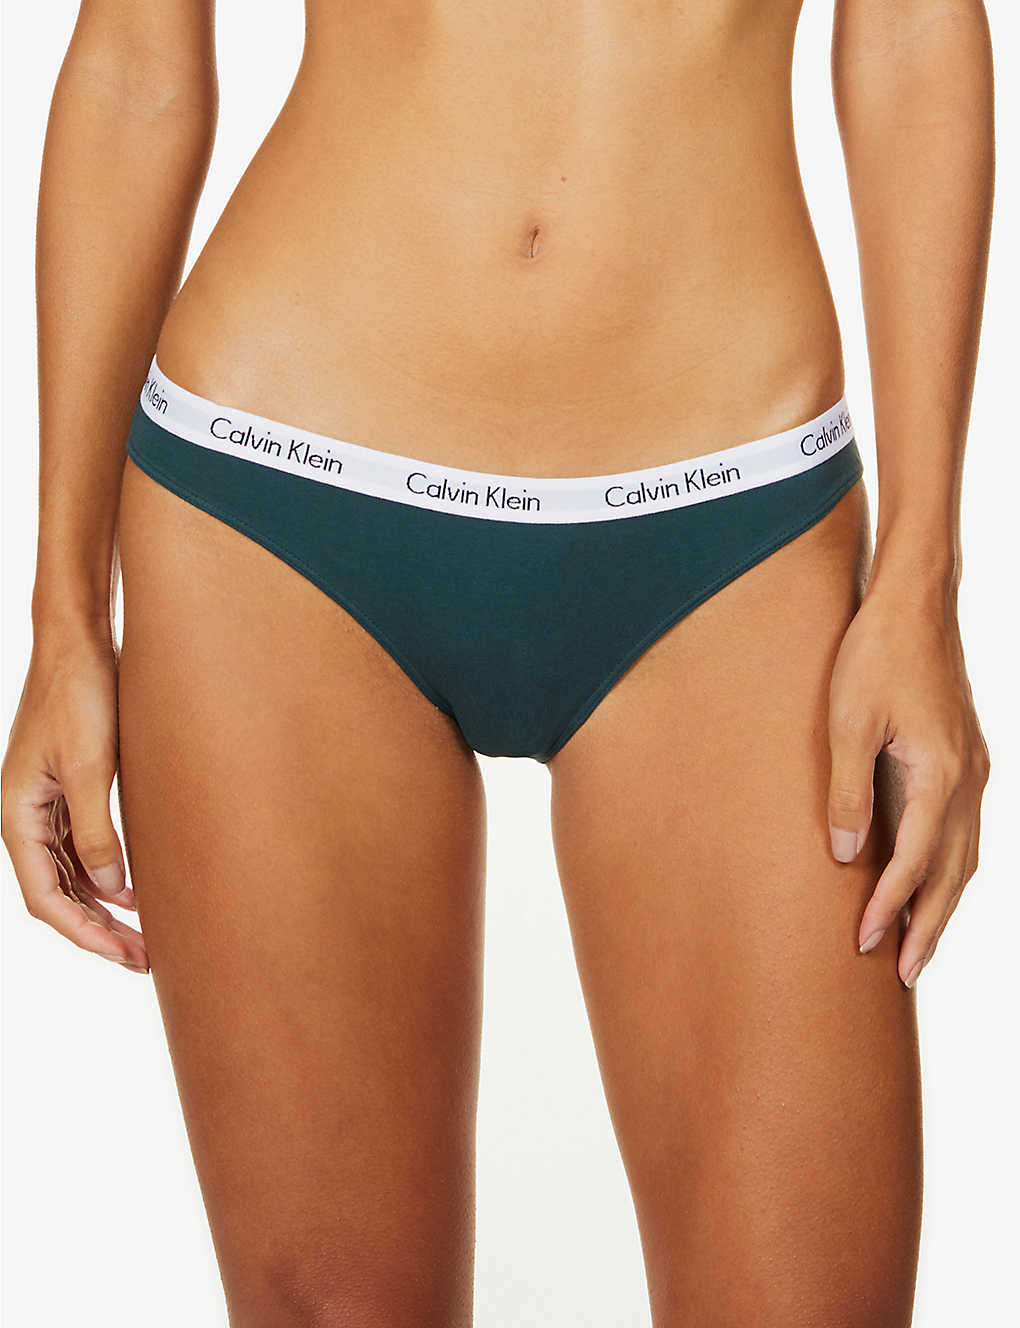 CALVIN KLEIN: Carousel stretch-cotton bikini briefs